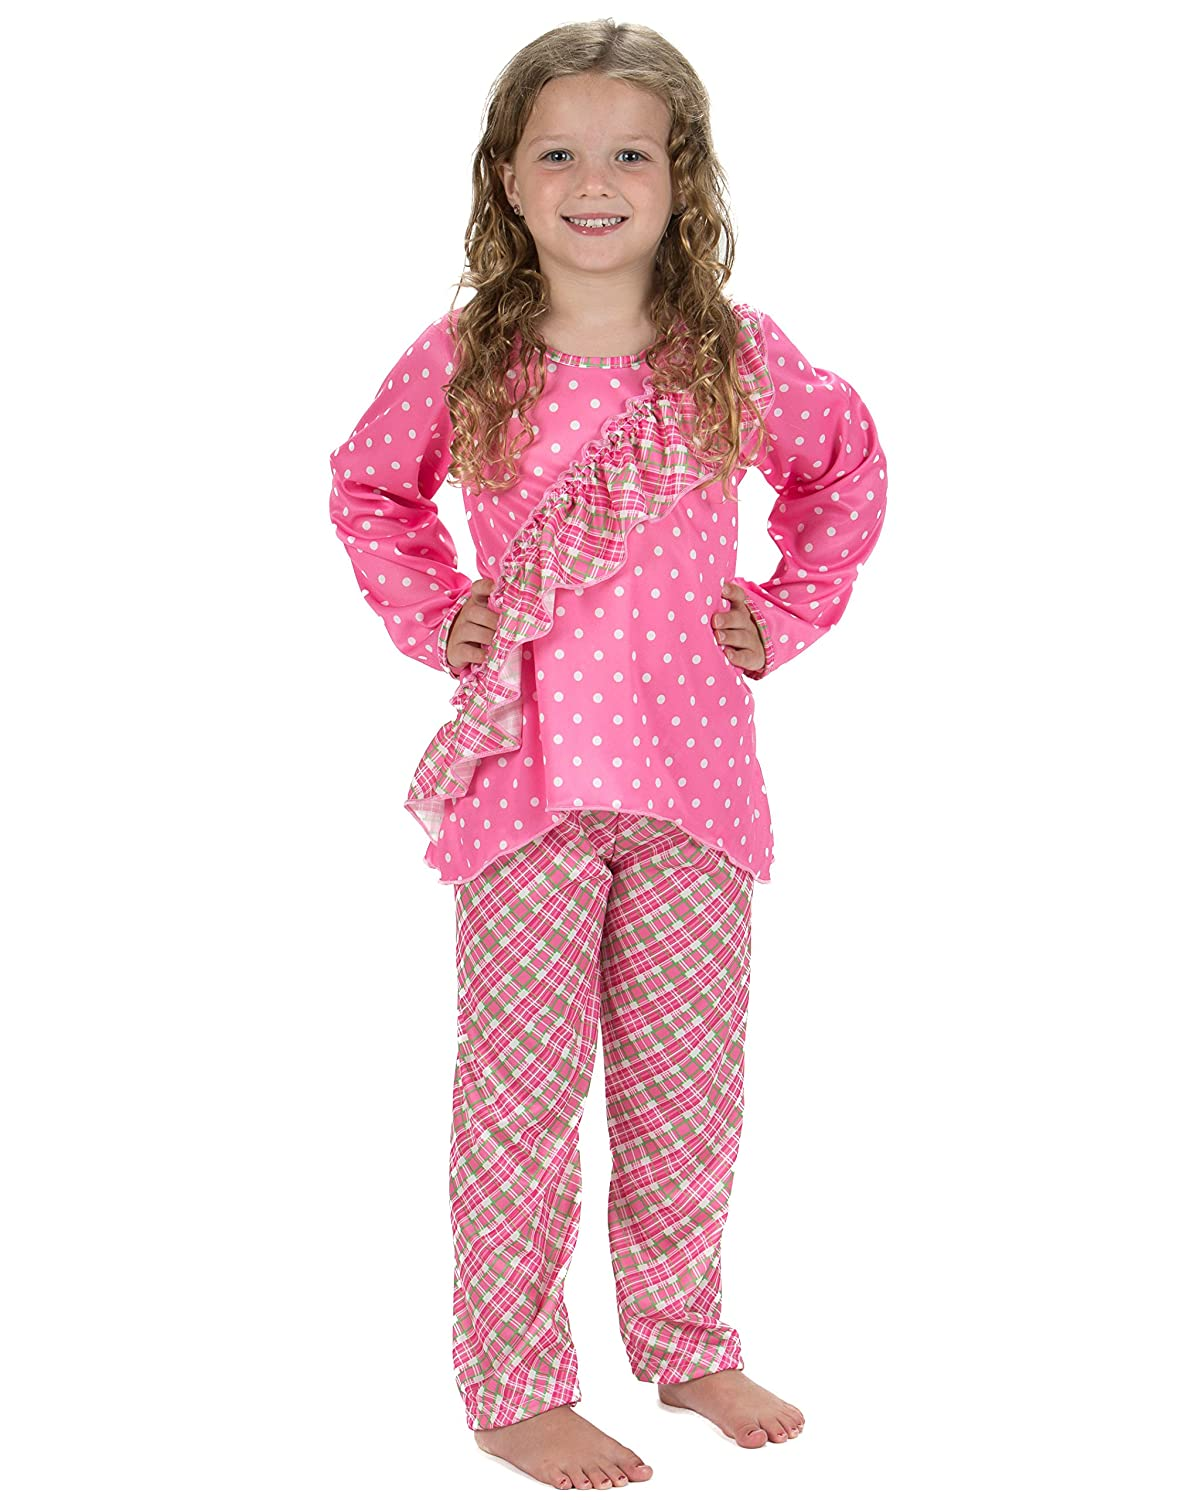 Laura Dare Youth Girls Pink Playful Plaid Vertical Ruffle Pajamas